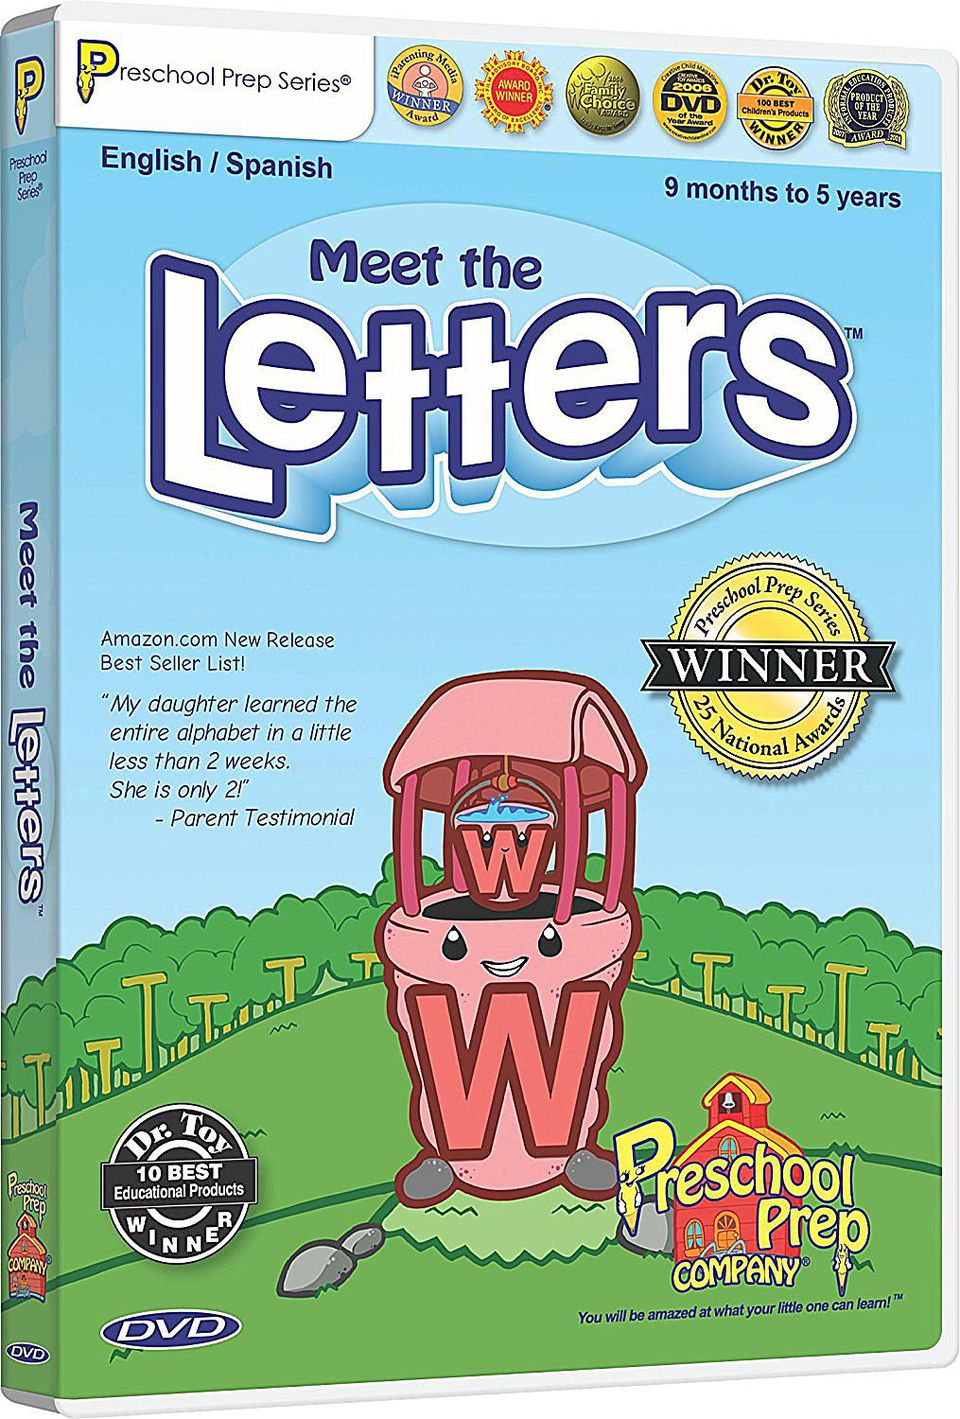 Meet the Letters DVD